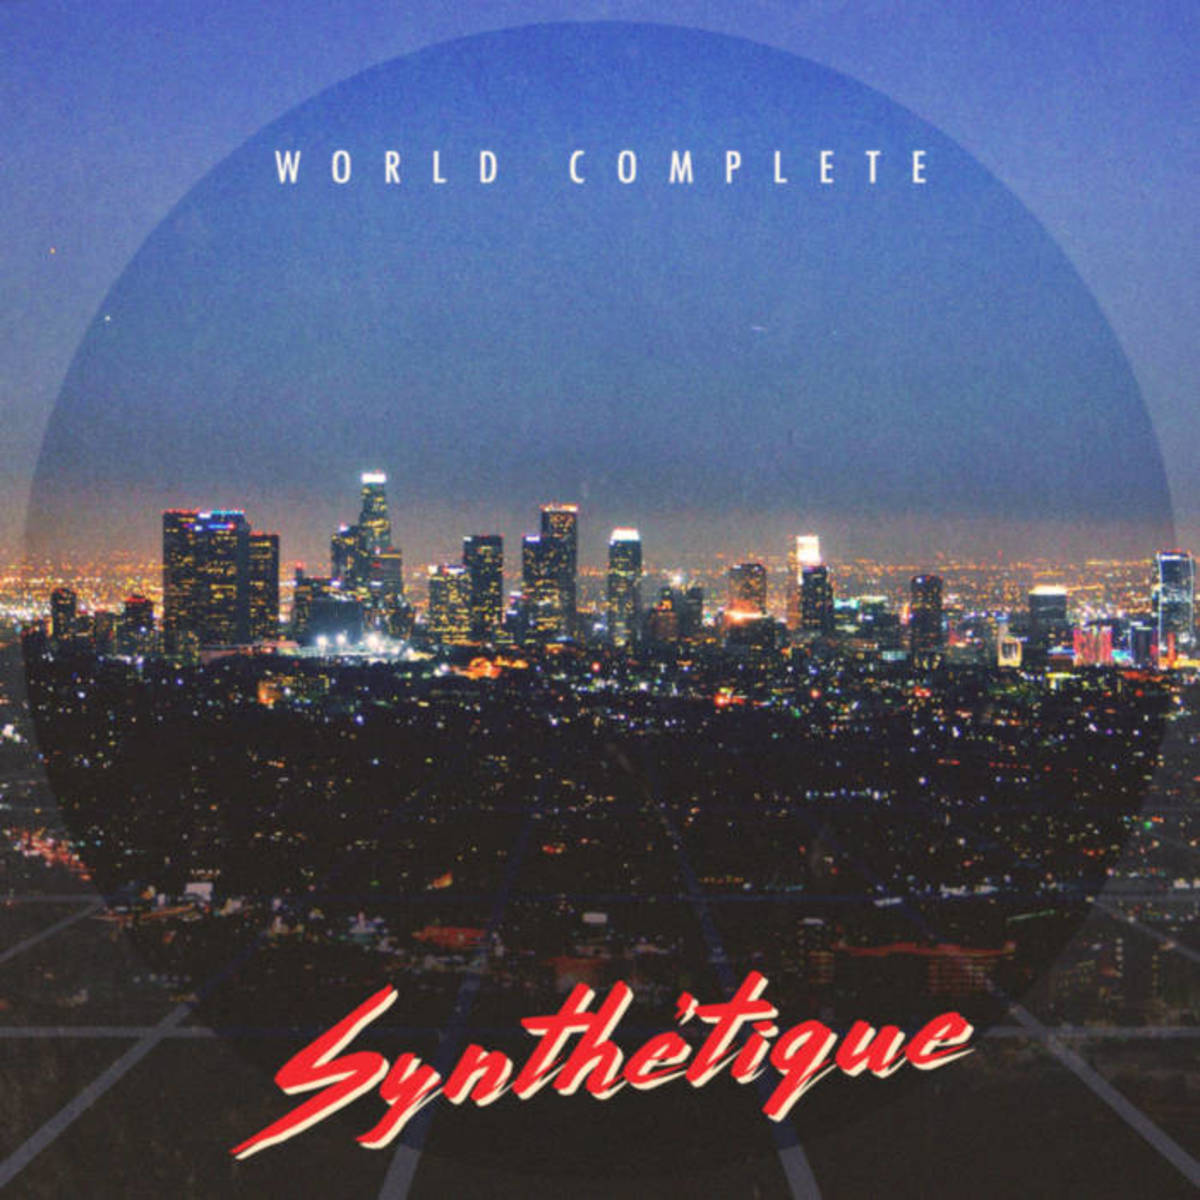 """Artwork for World Complete's new single, """"Synthétique"""""""